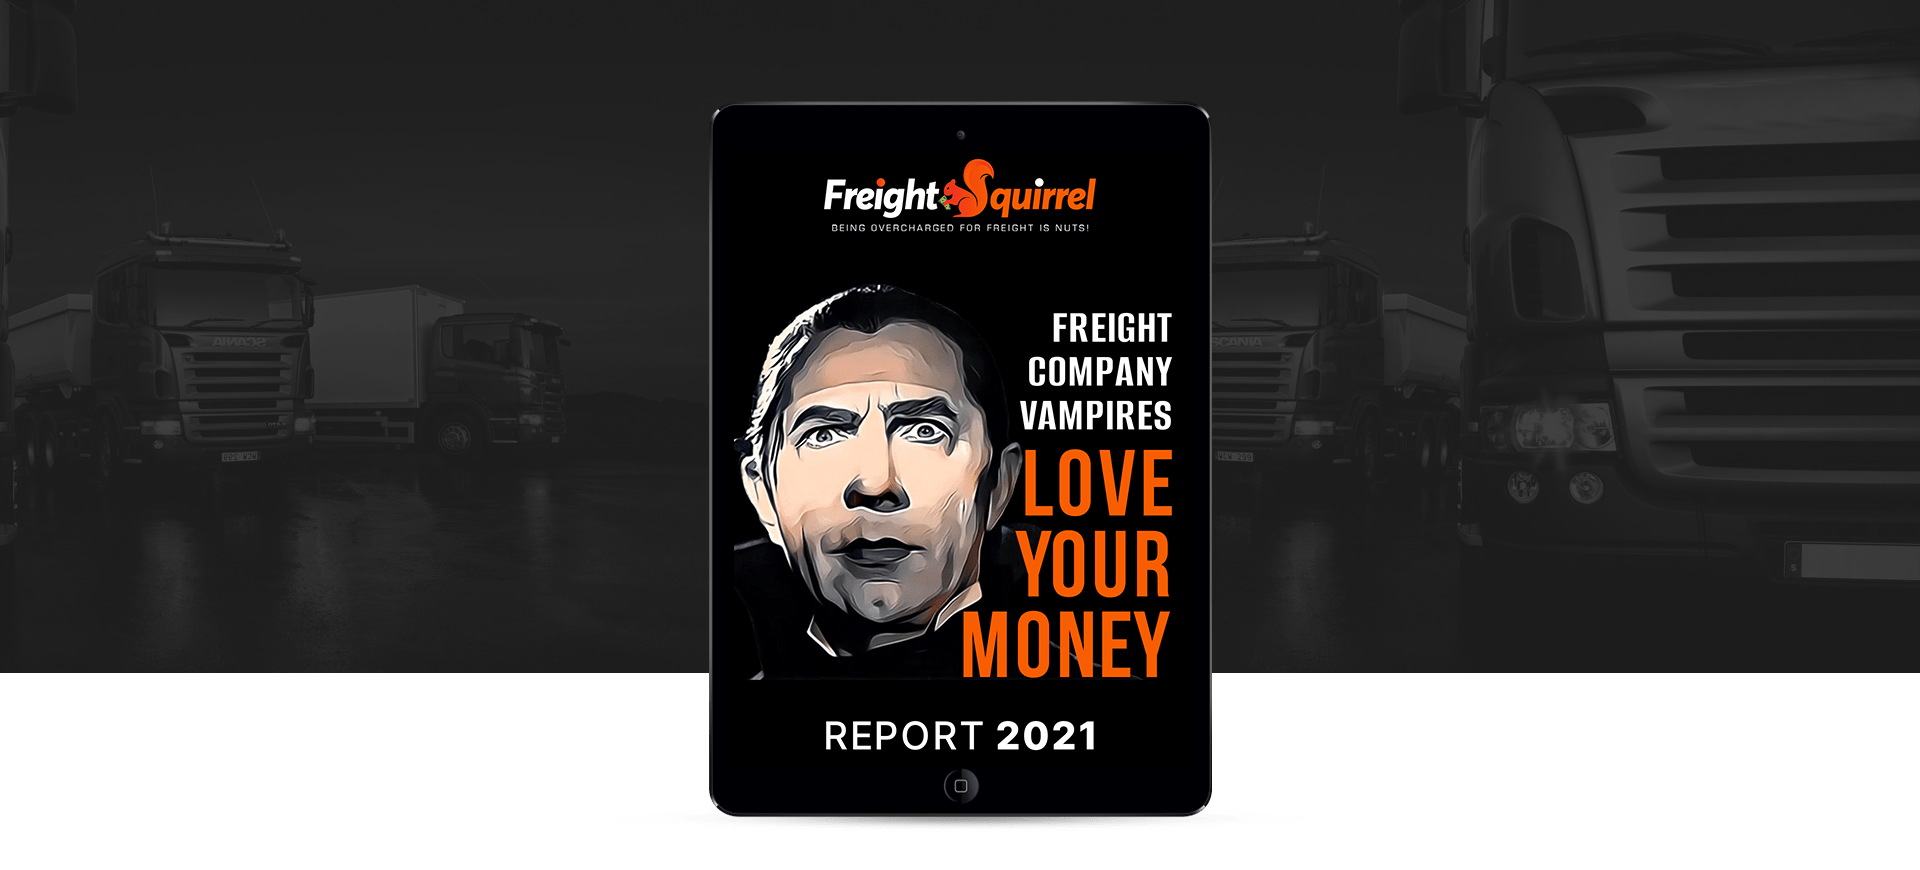 freight auditing by Freight Squirrel